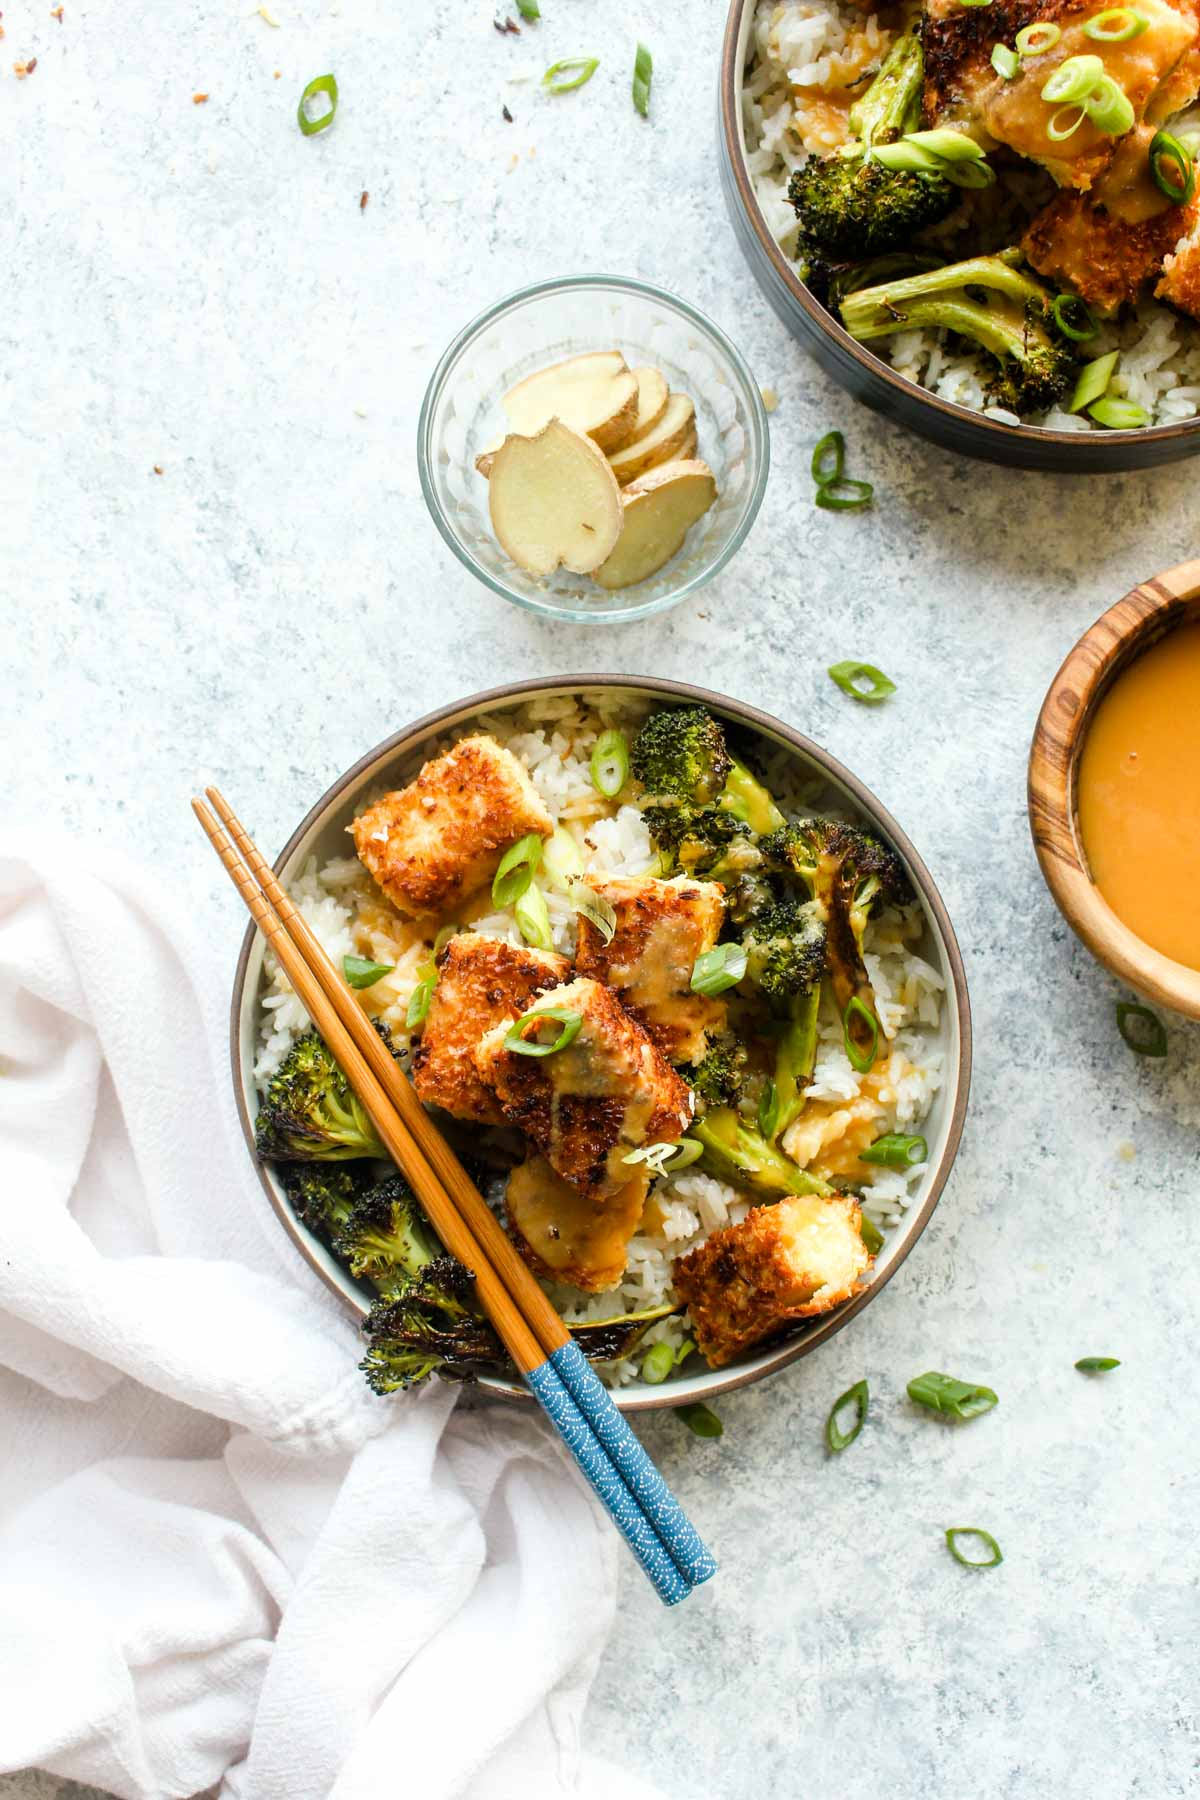 Coconut Crusted Tofu with Habanero Pineapple Sauce and Ginger Coconut Rice is a healthy recipe thats loaded with flavor. The coconut crusted tofu is cooked to golden brown perfection, drizzled with a sweet and spicy sauce, and then served atop fragrant rice. And this dish is vegan and gluten free!